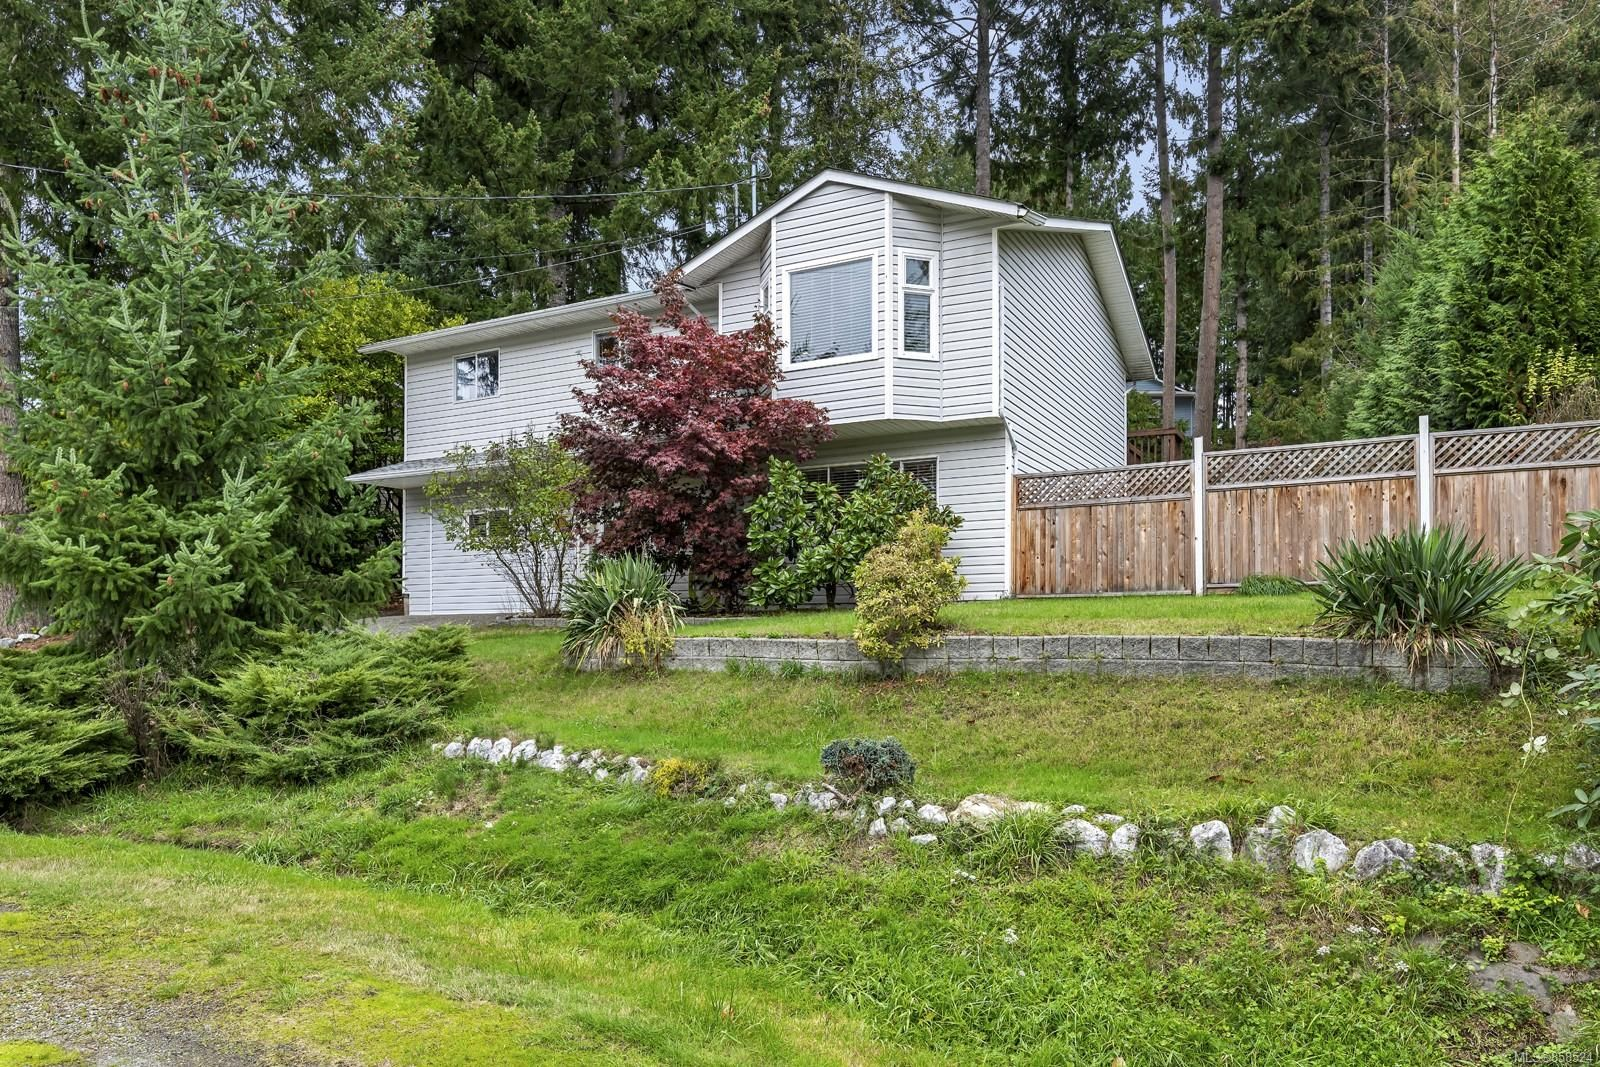 Main Photo: 2815 Meadowview Rd in : ML Shawnigan House for sale (Malahat & Area)  : MLS®# 858524